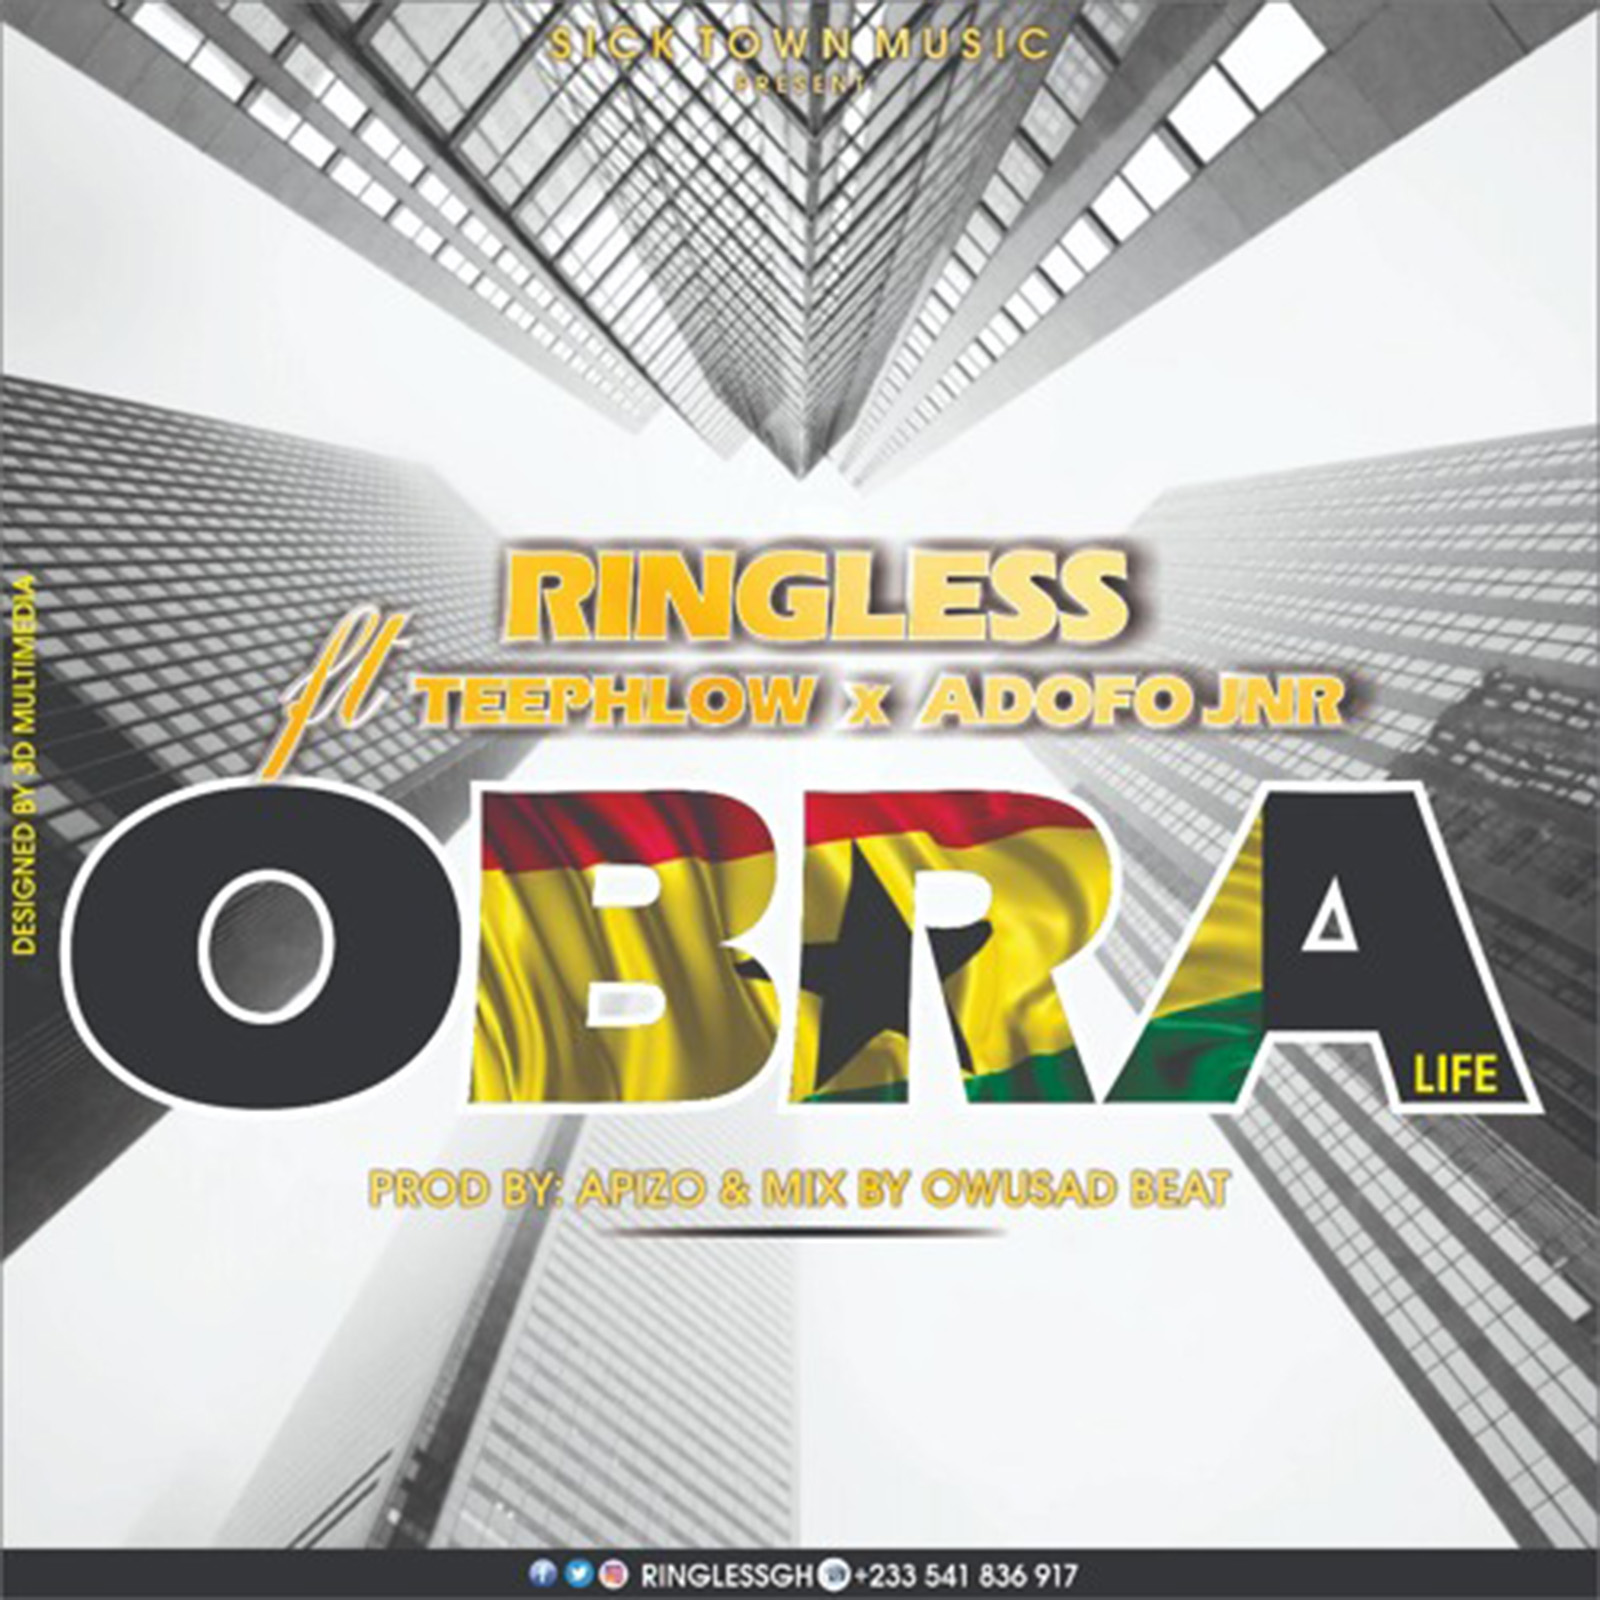 Obra by Ringless feat. Teephlow & Adofo Jnr